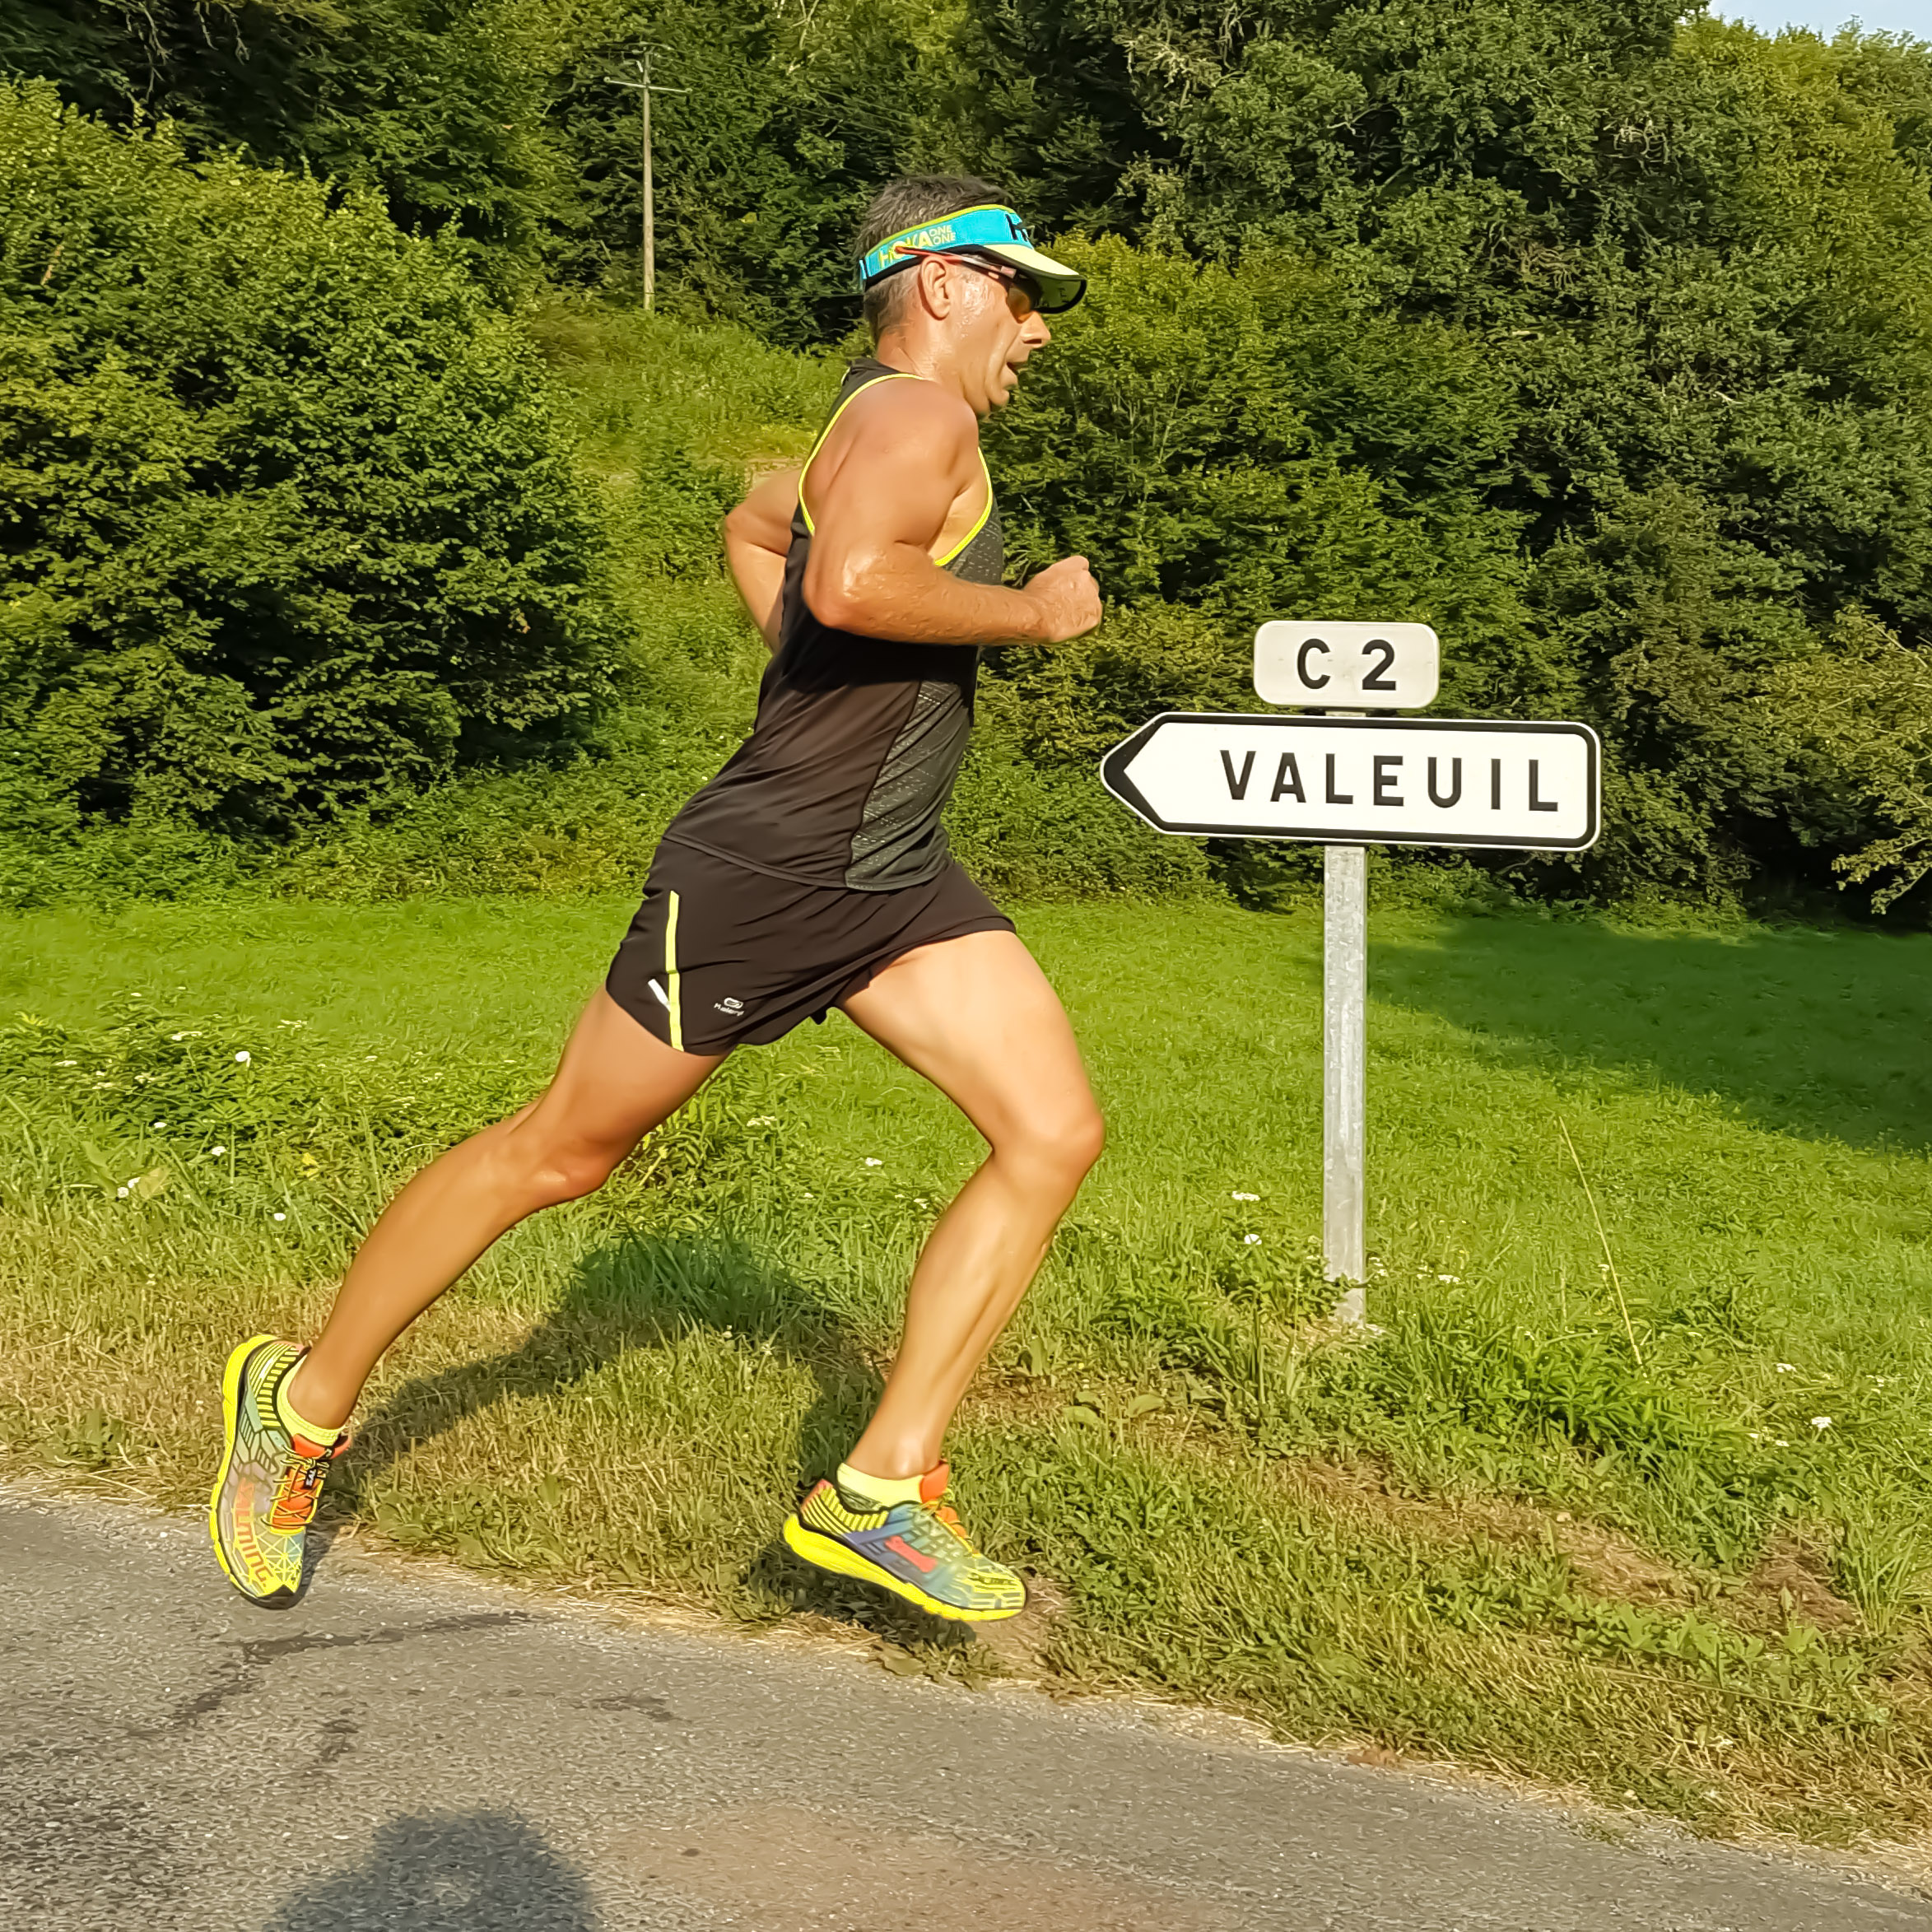 run like a runner - Ready to take the next step? Why not make it quicker. Yes the runs are in amazing countryside, but the coaching will make you think more about what you need to do to be a technically better runner